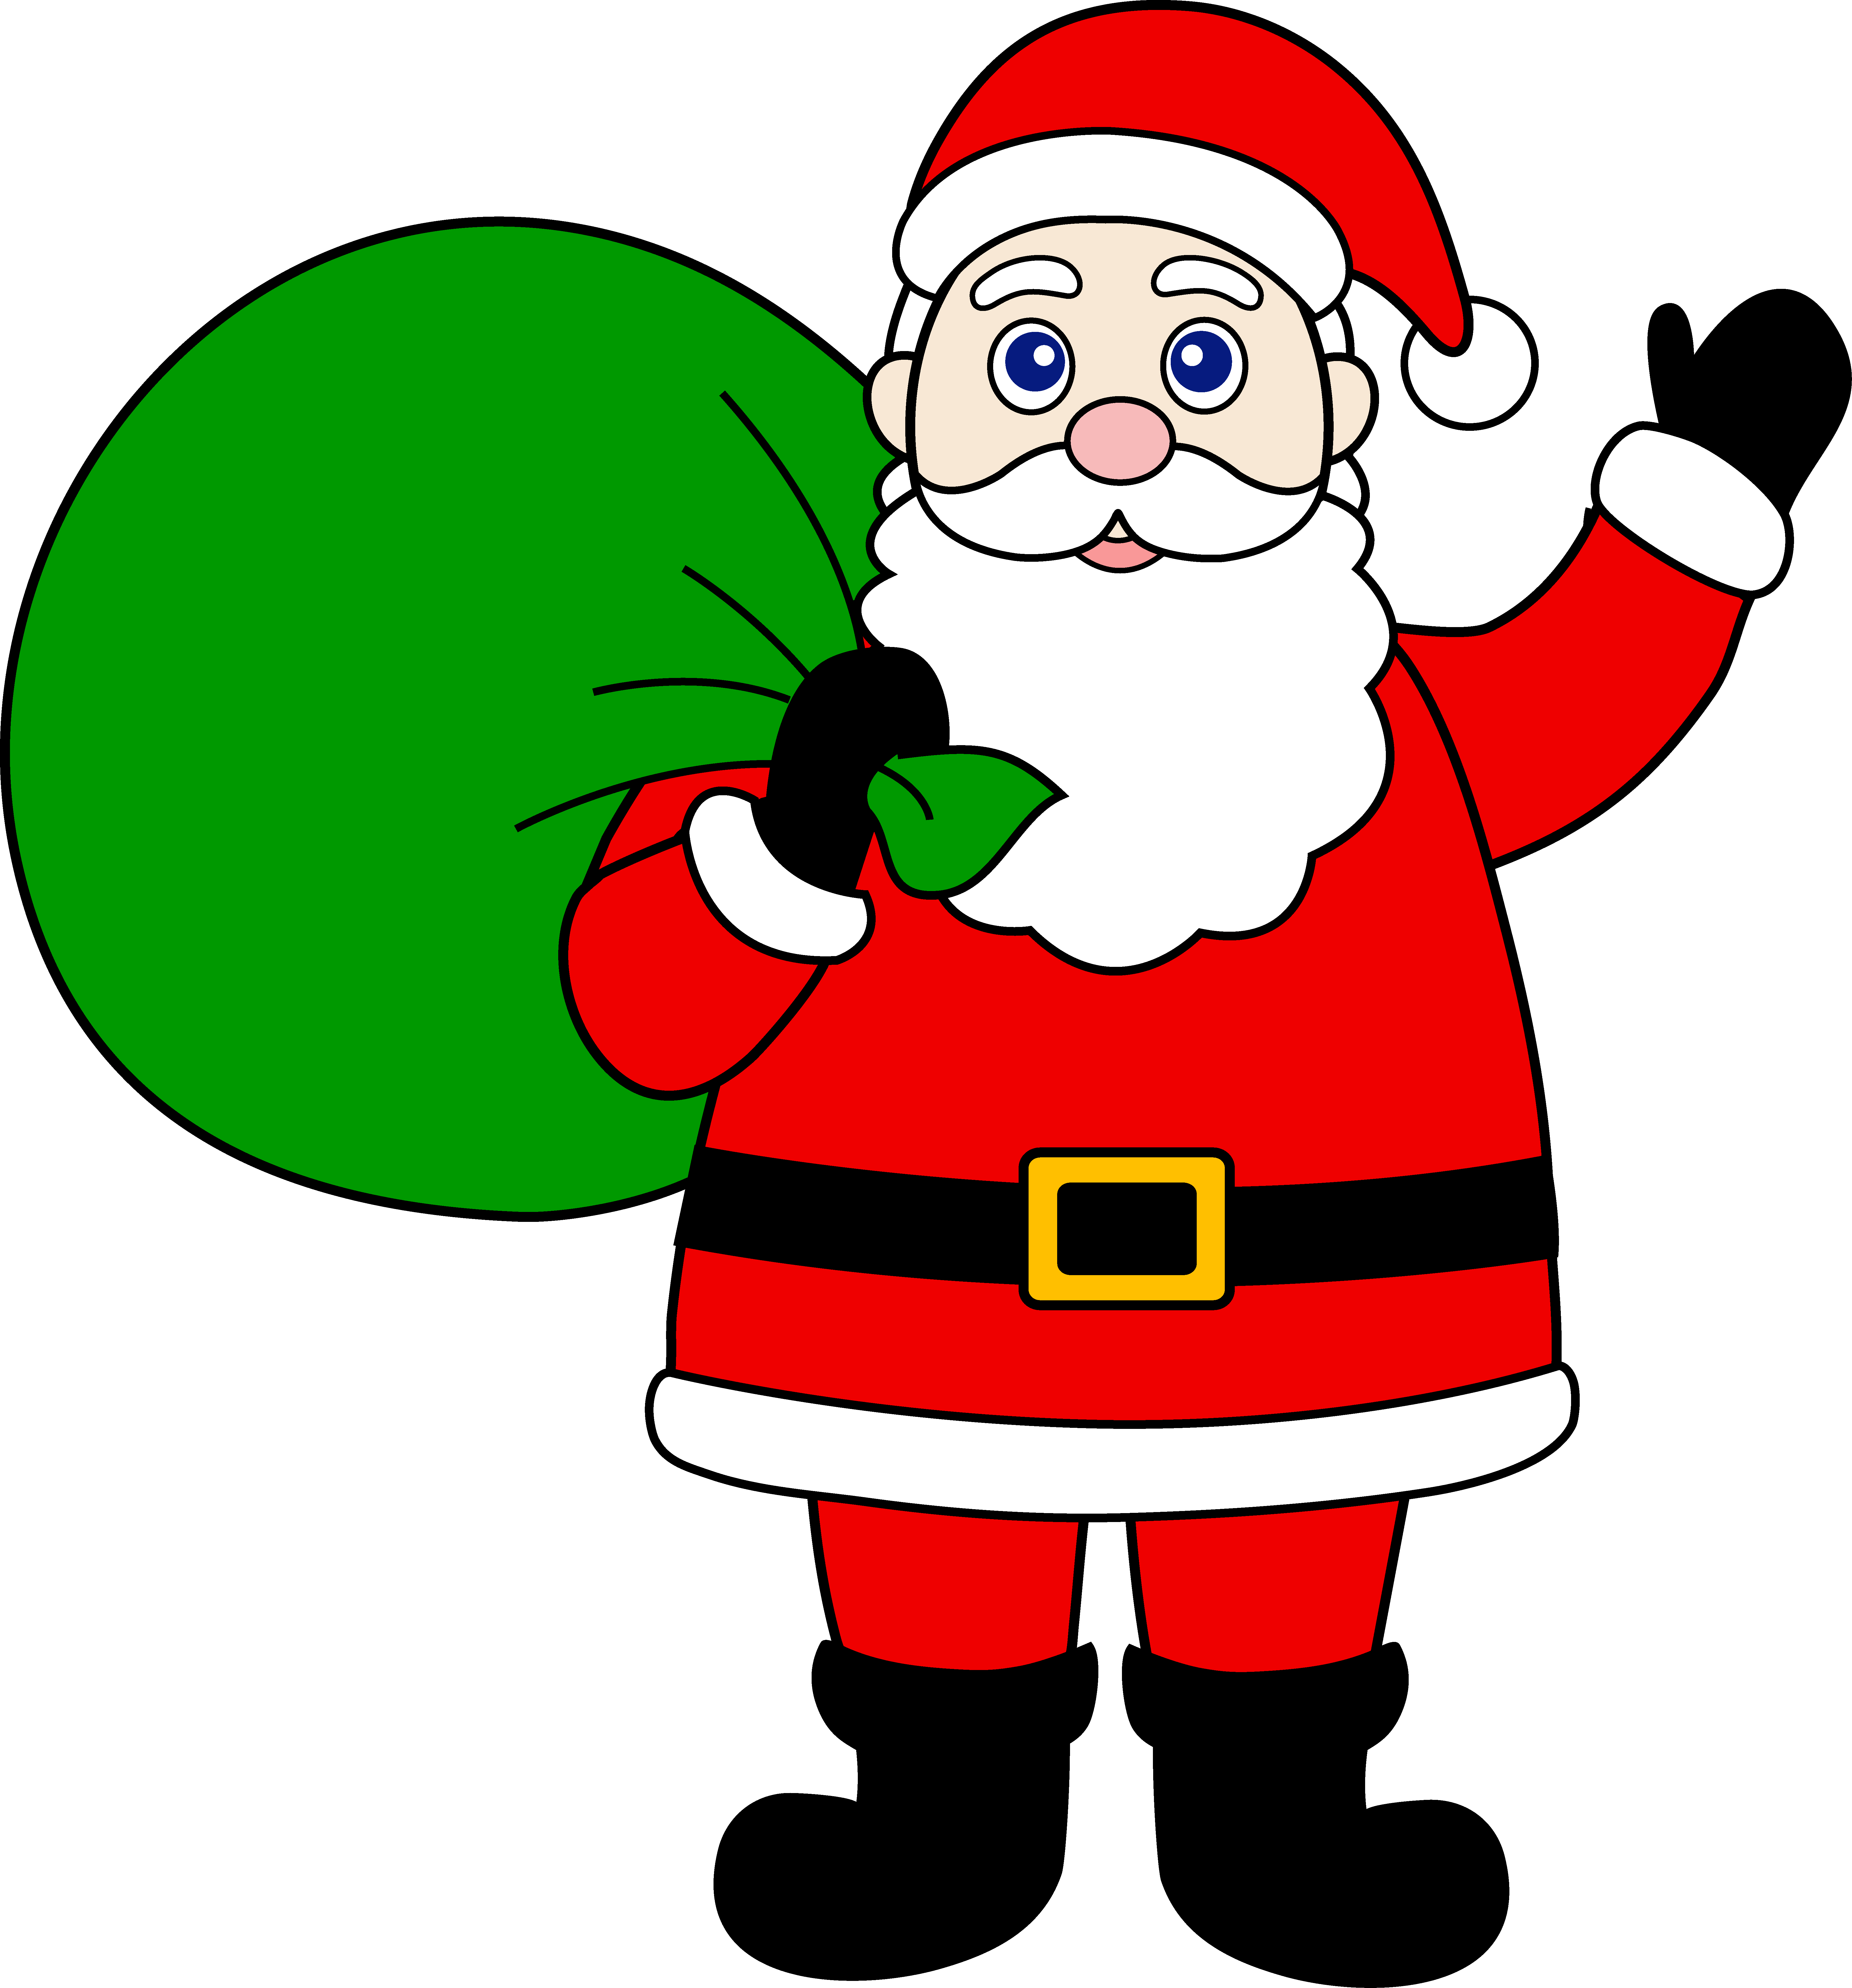 Santa Claus With Sack of Gifts - Free Clip Art